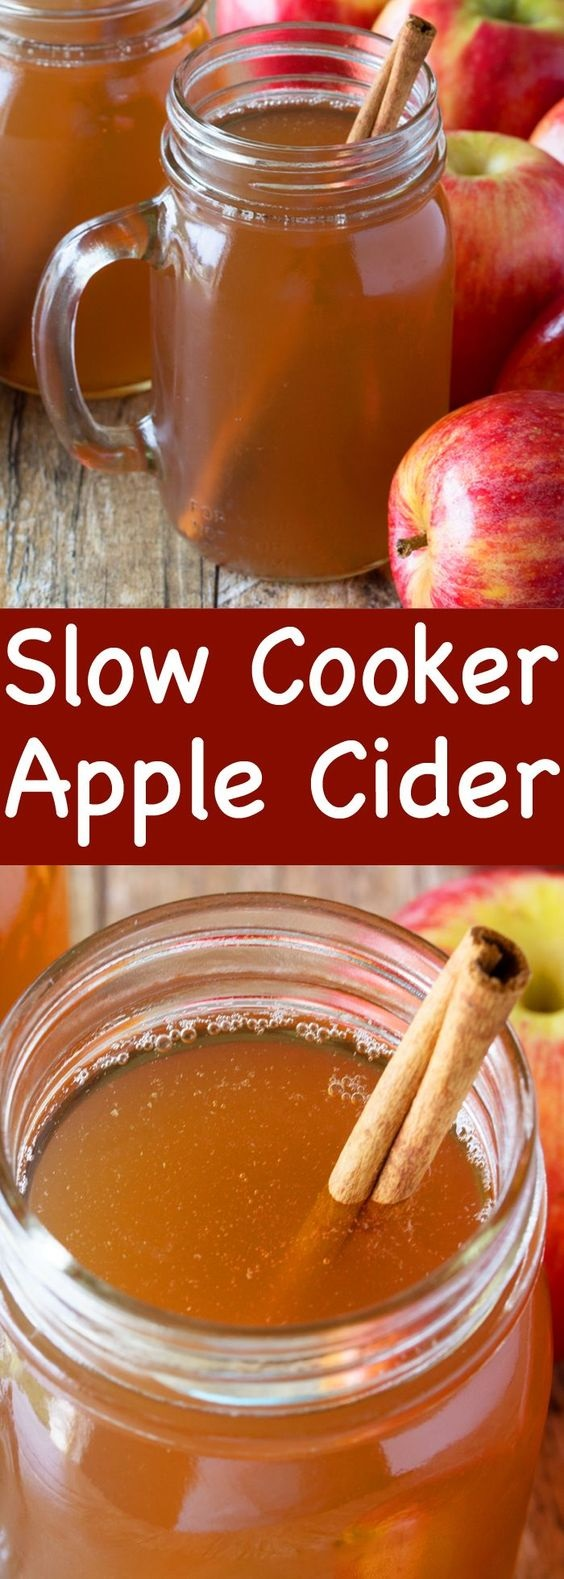 Slow Cooker Apple Cider From Scratch